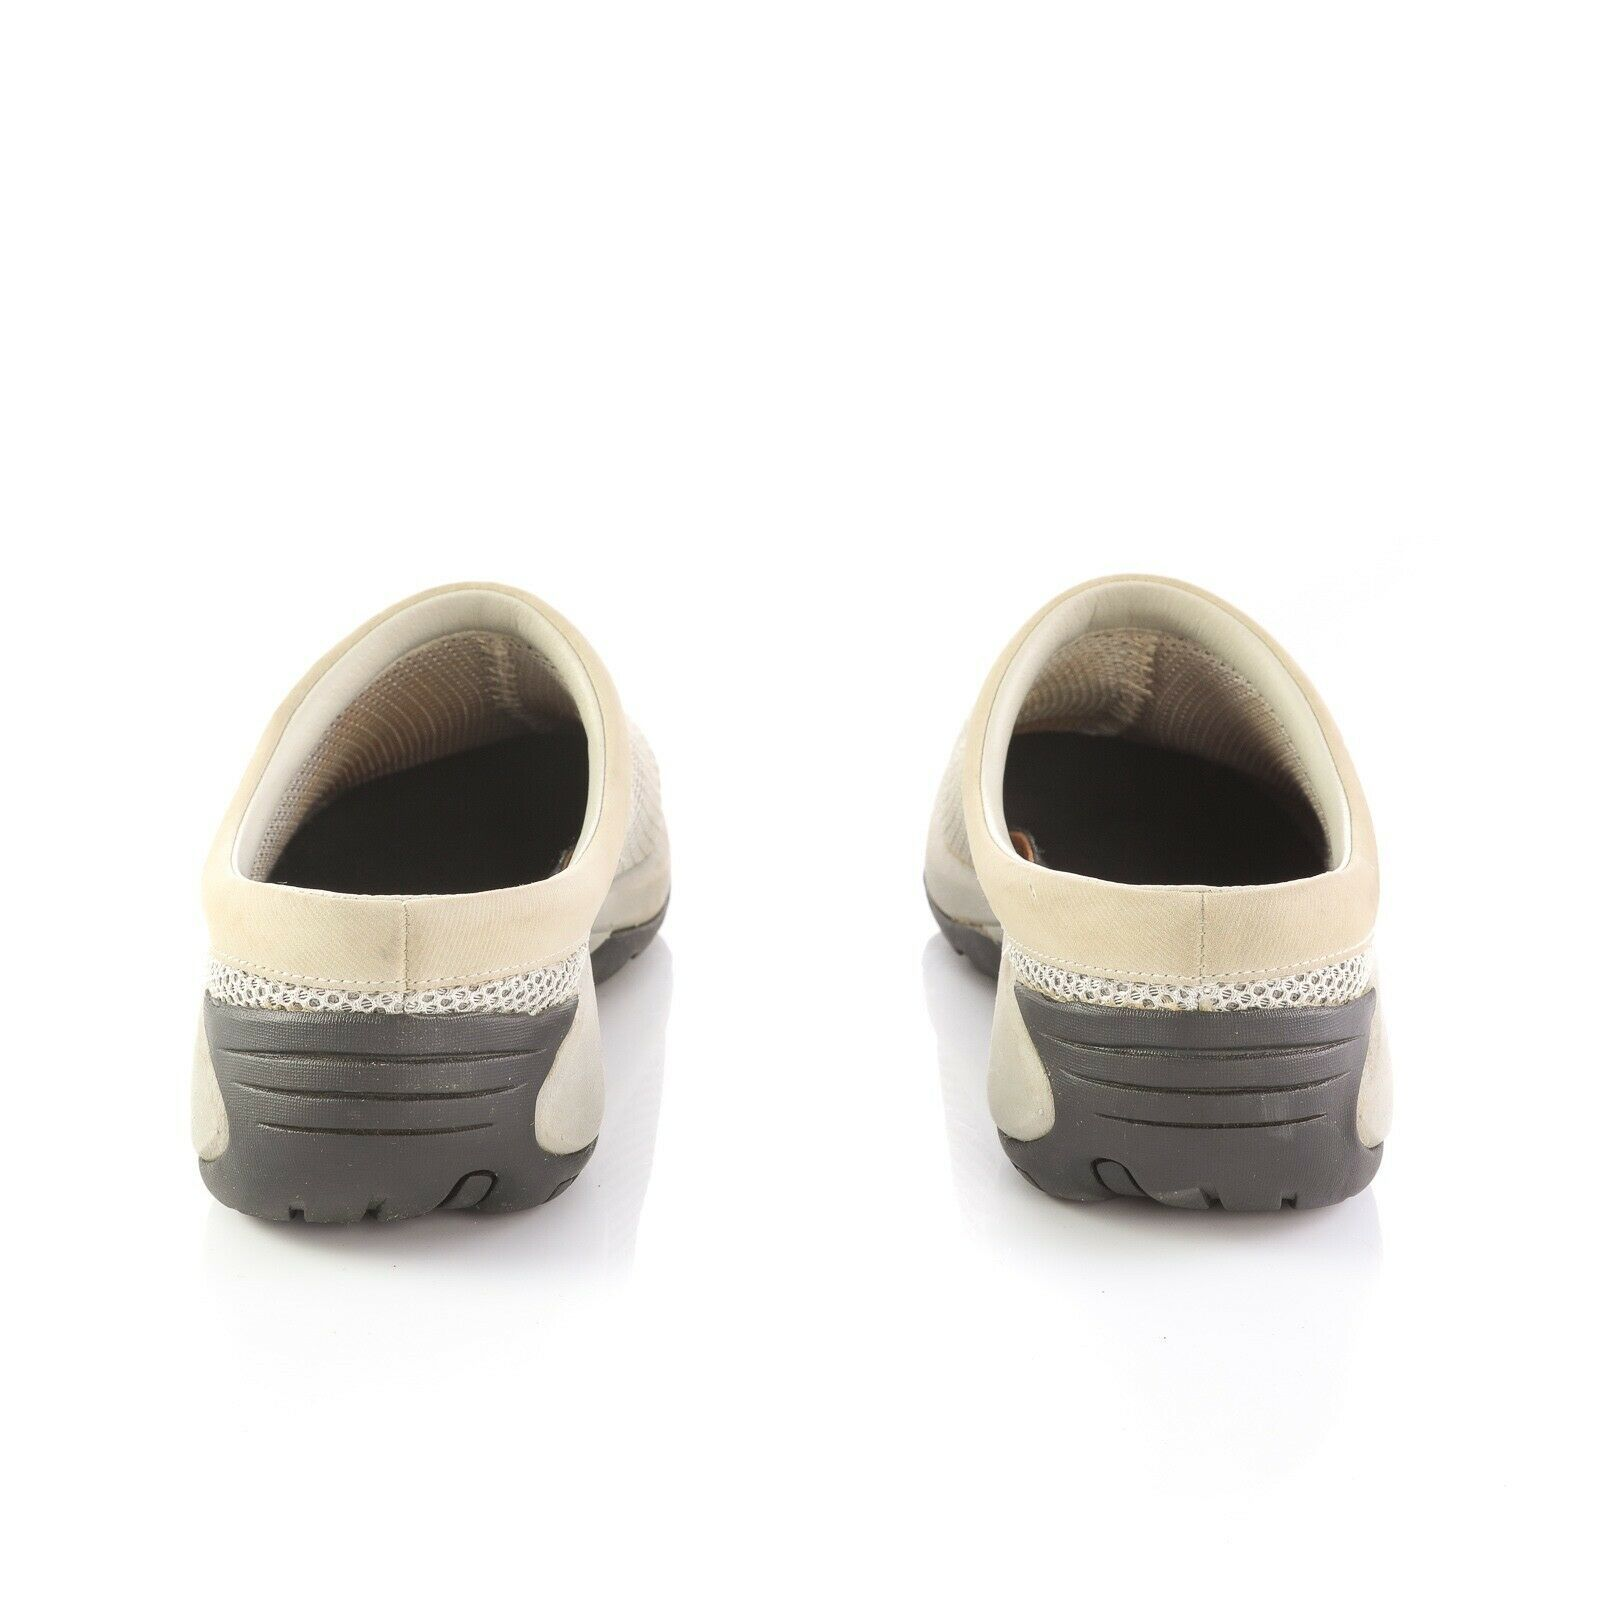 Merrell Moc Mesh Silver Mist Loafers Casual Comfort Shoes Air Cushion Women 10.5